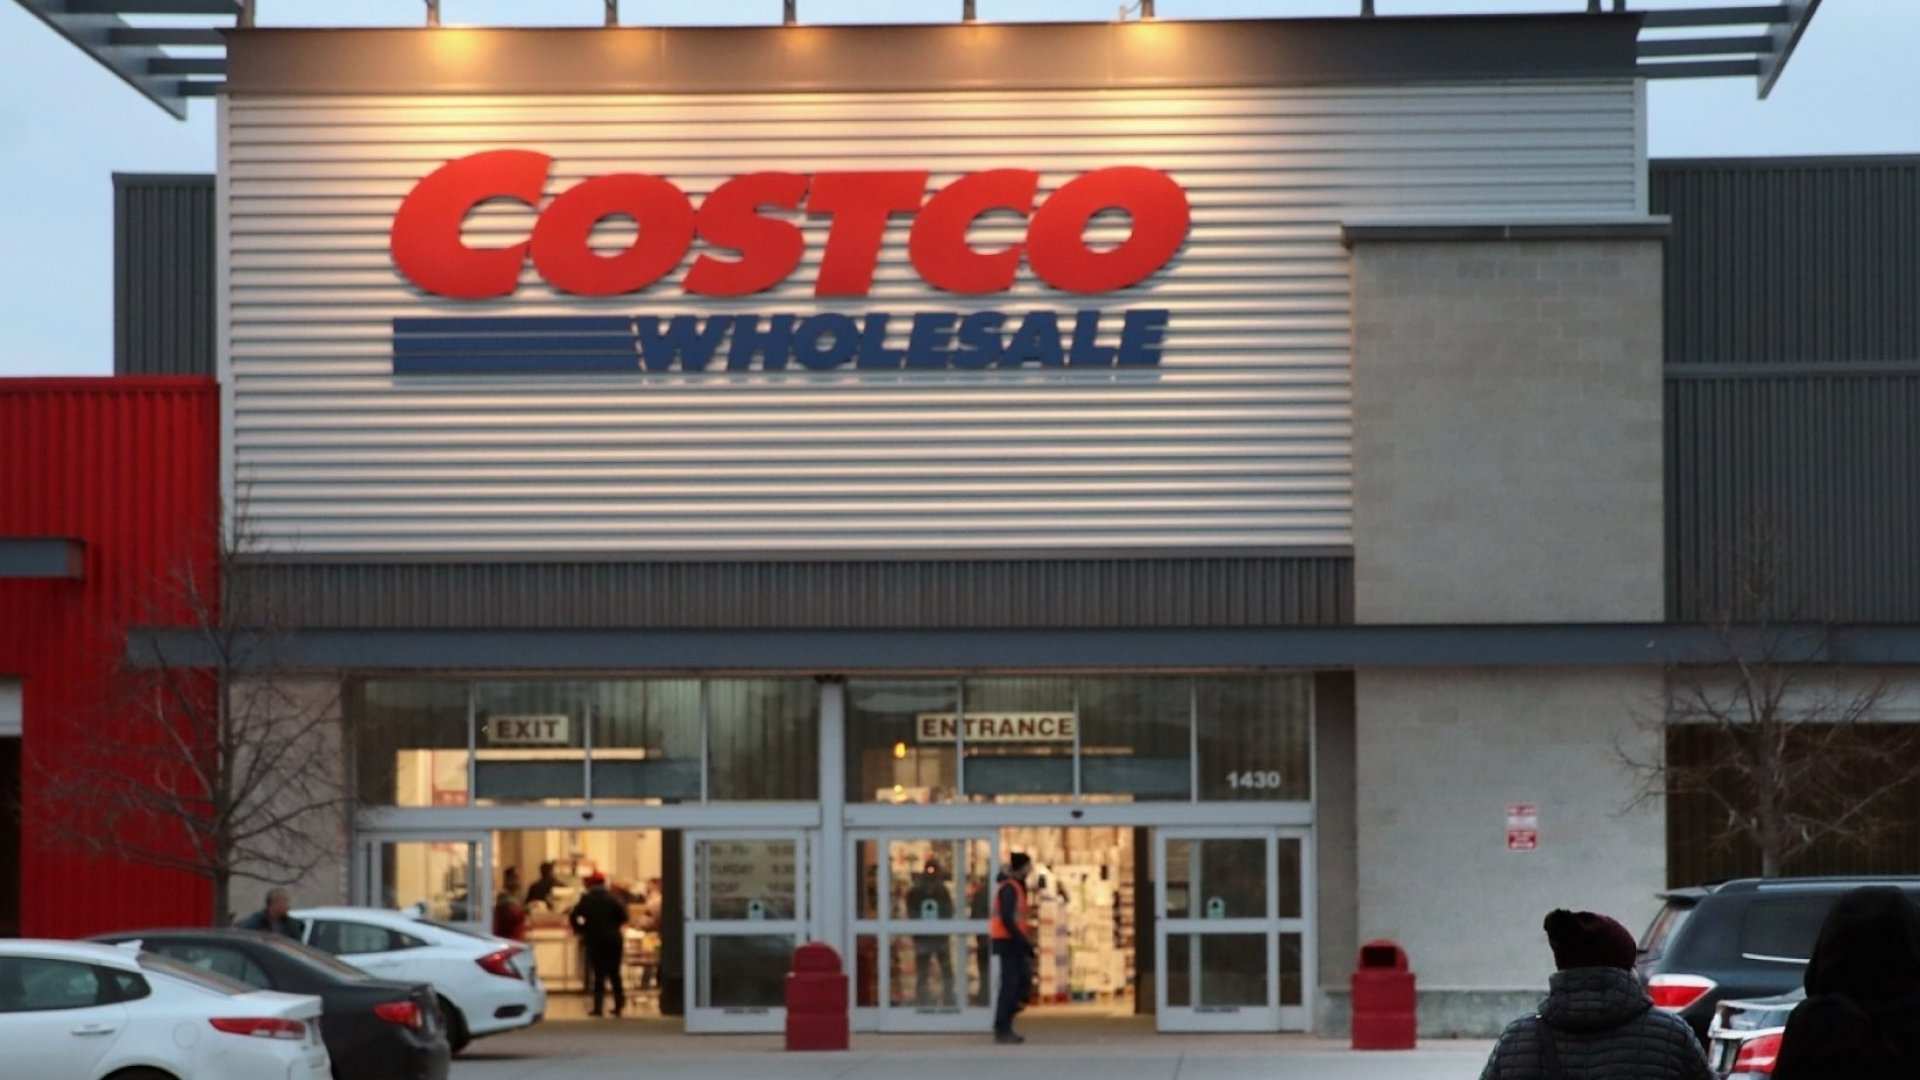 Costco Just Revealed It Now Makes $7 Billion a Year Selling This 1 'Stunning' Thing. (Most People Never Even Think of Buying This at Costco)